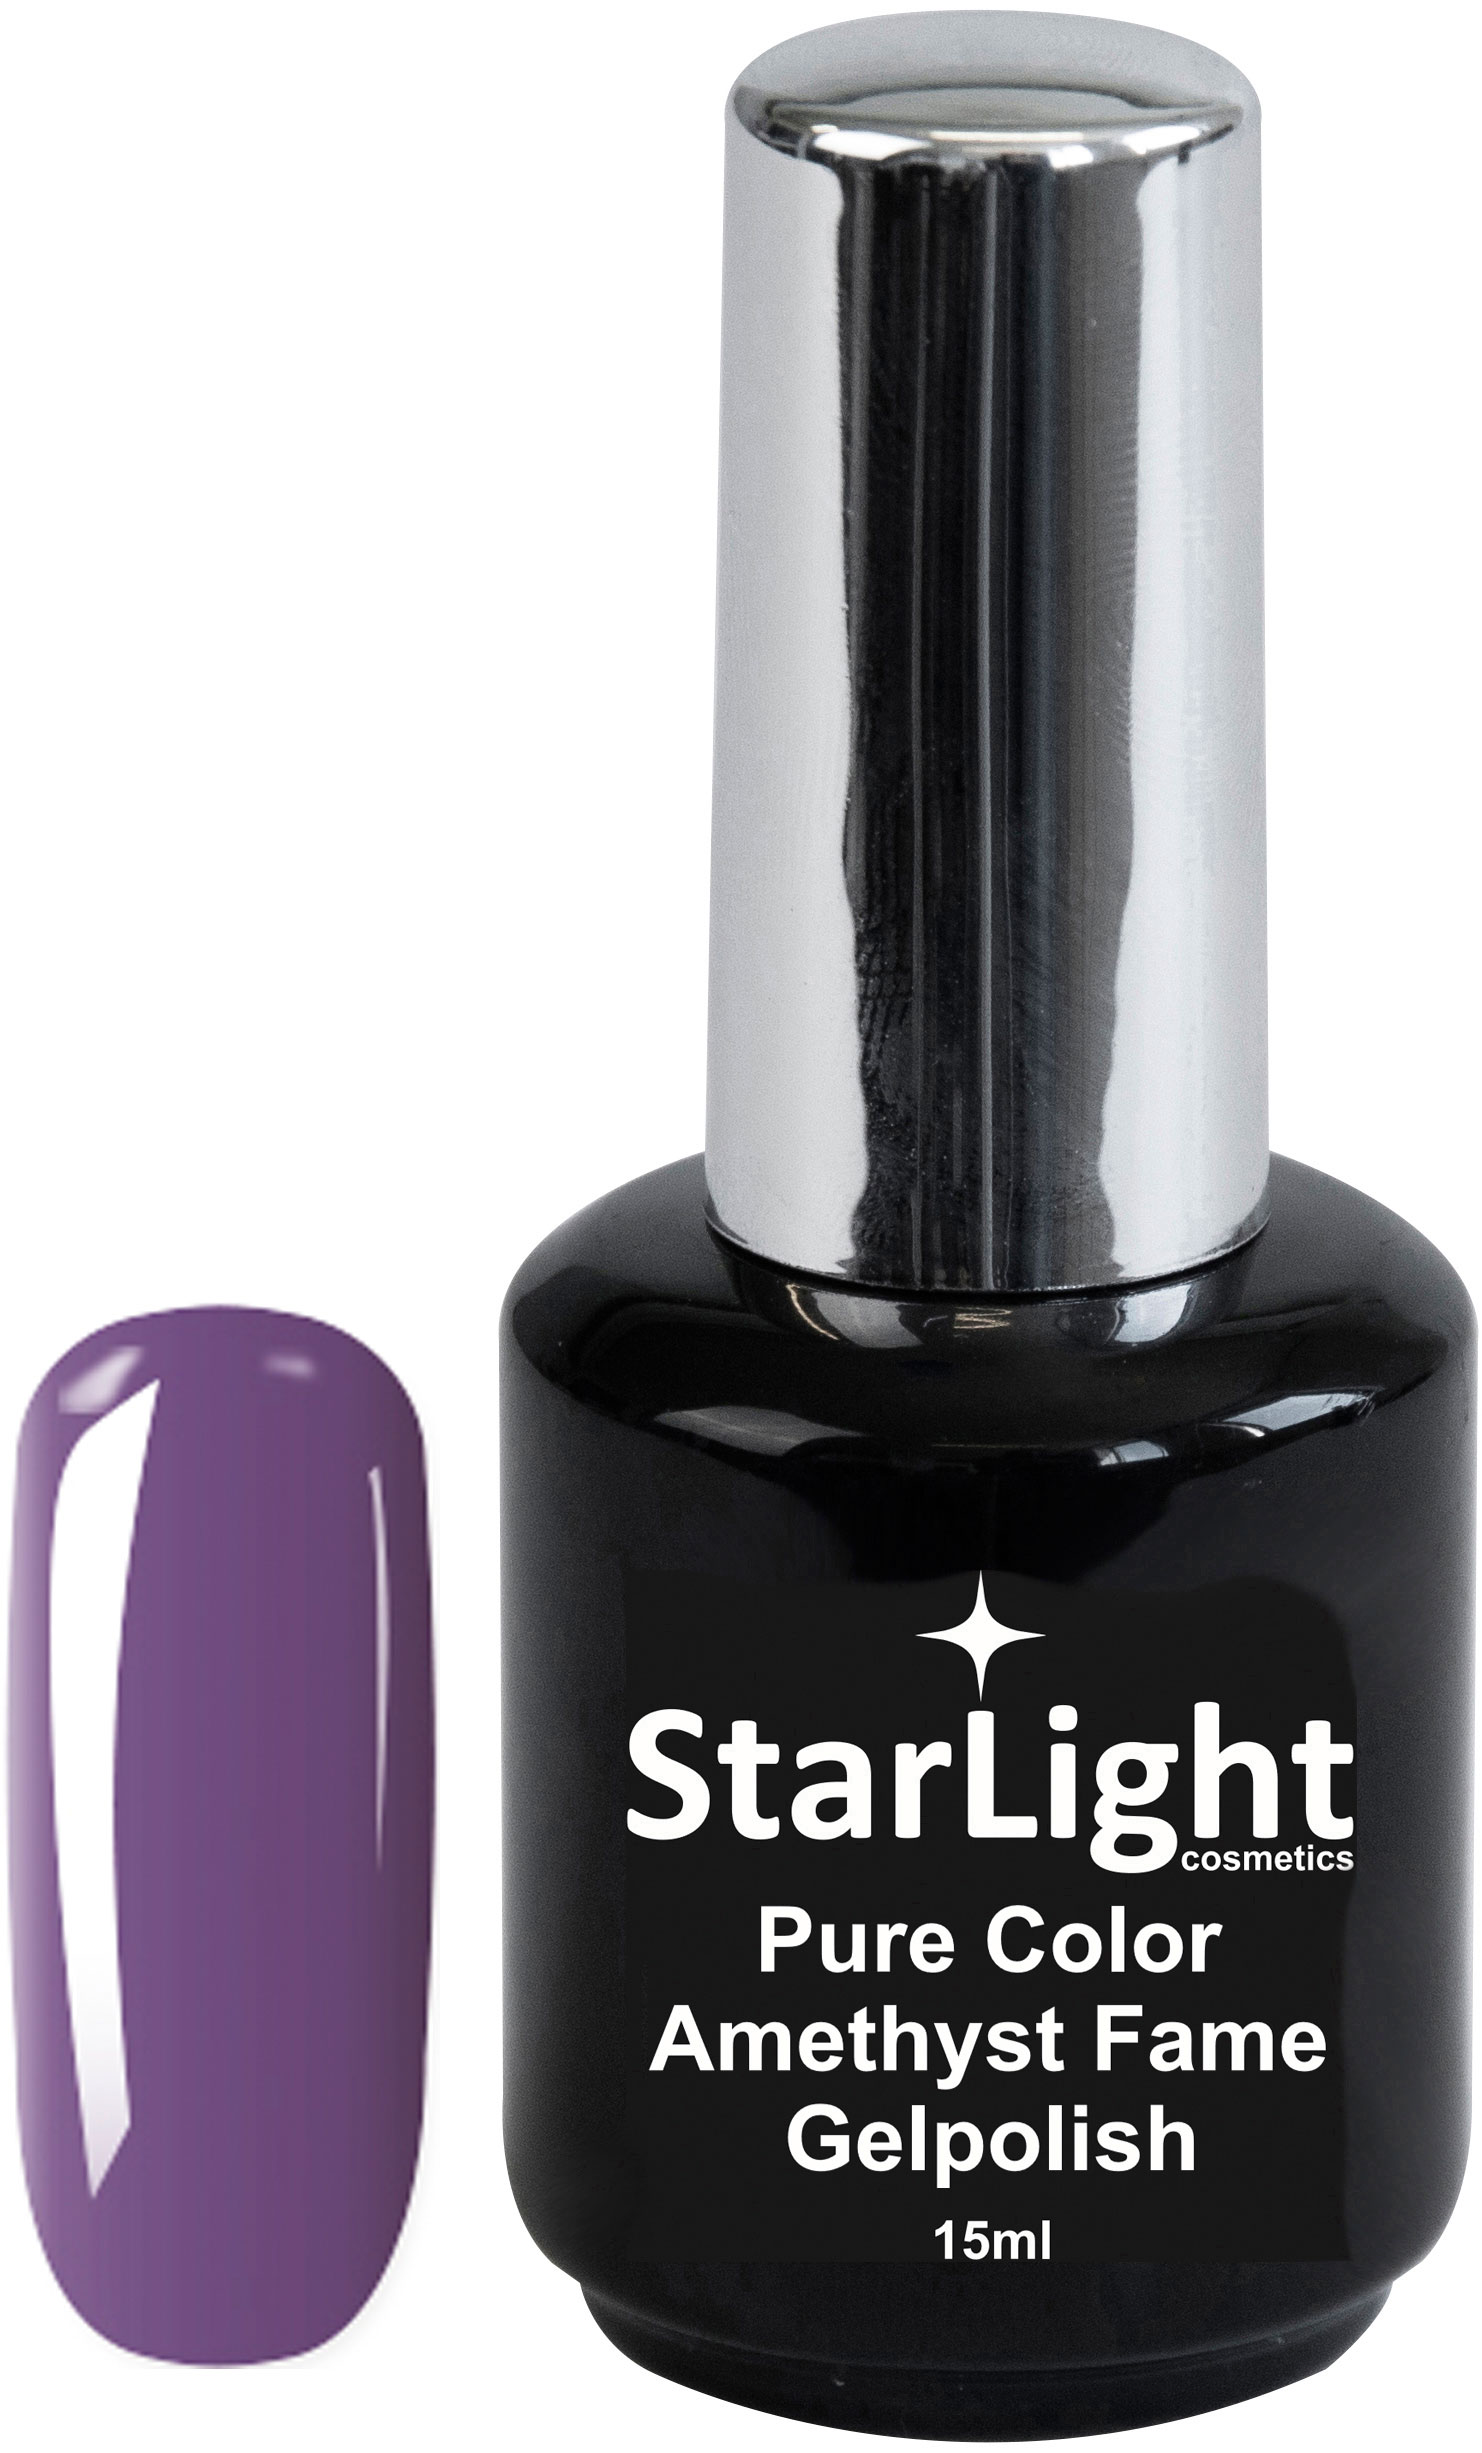 Naglar Gelpolish Pure Color Amethyst Fame - 15 ml